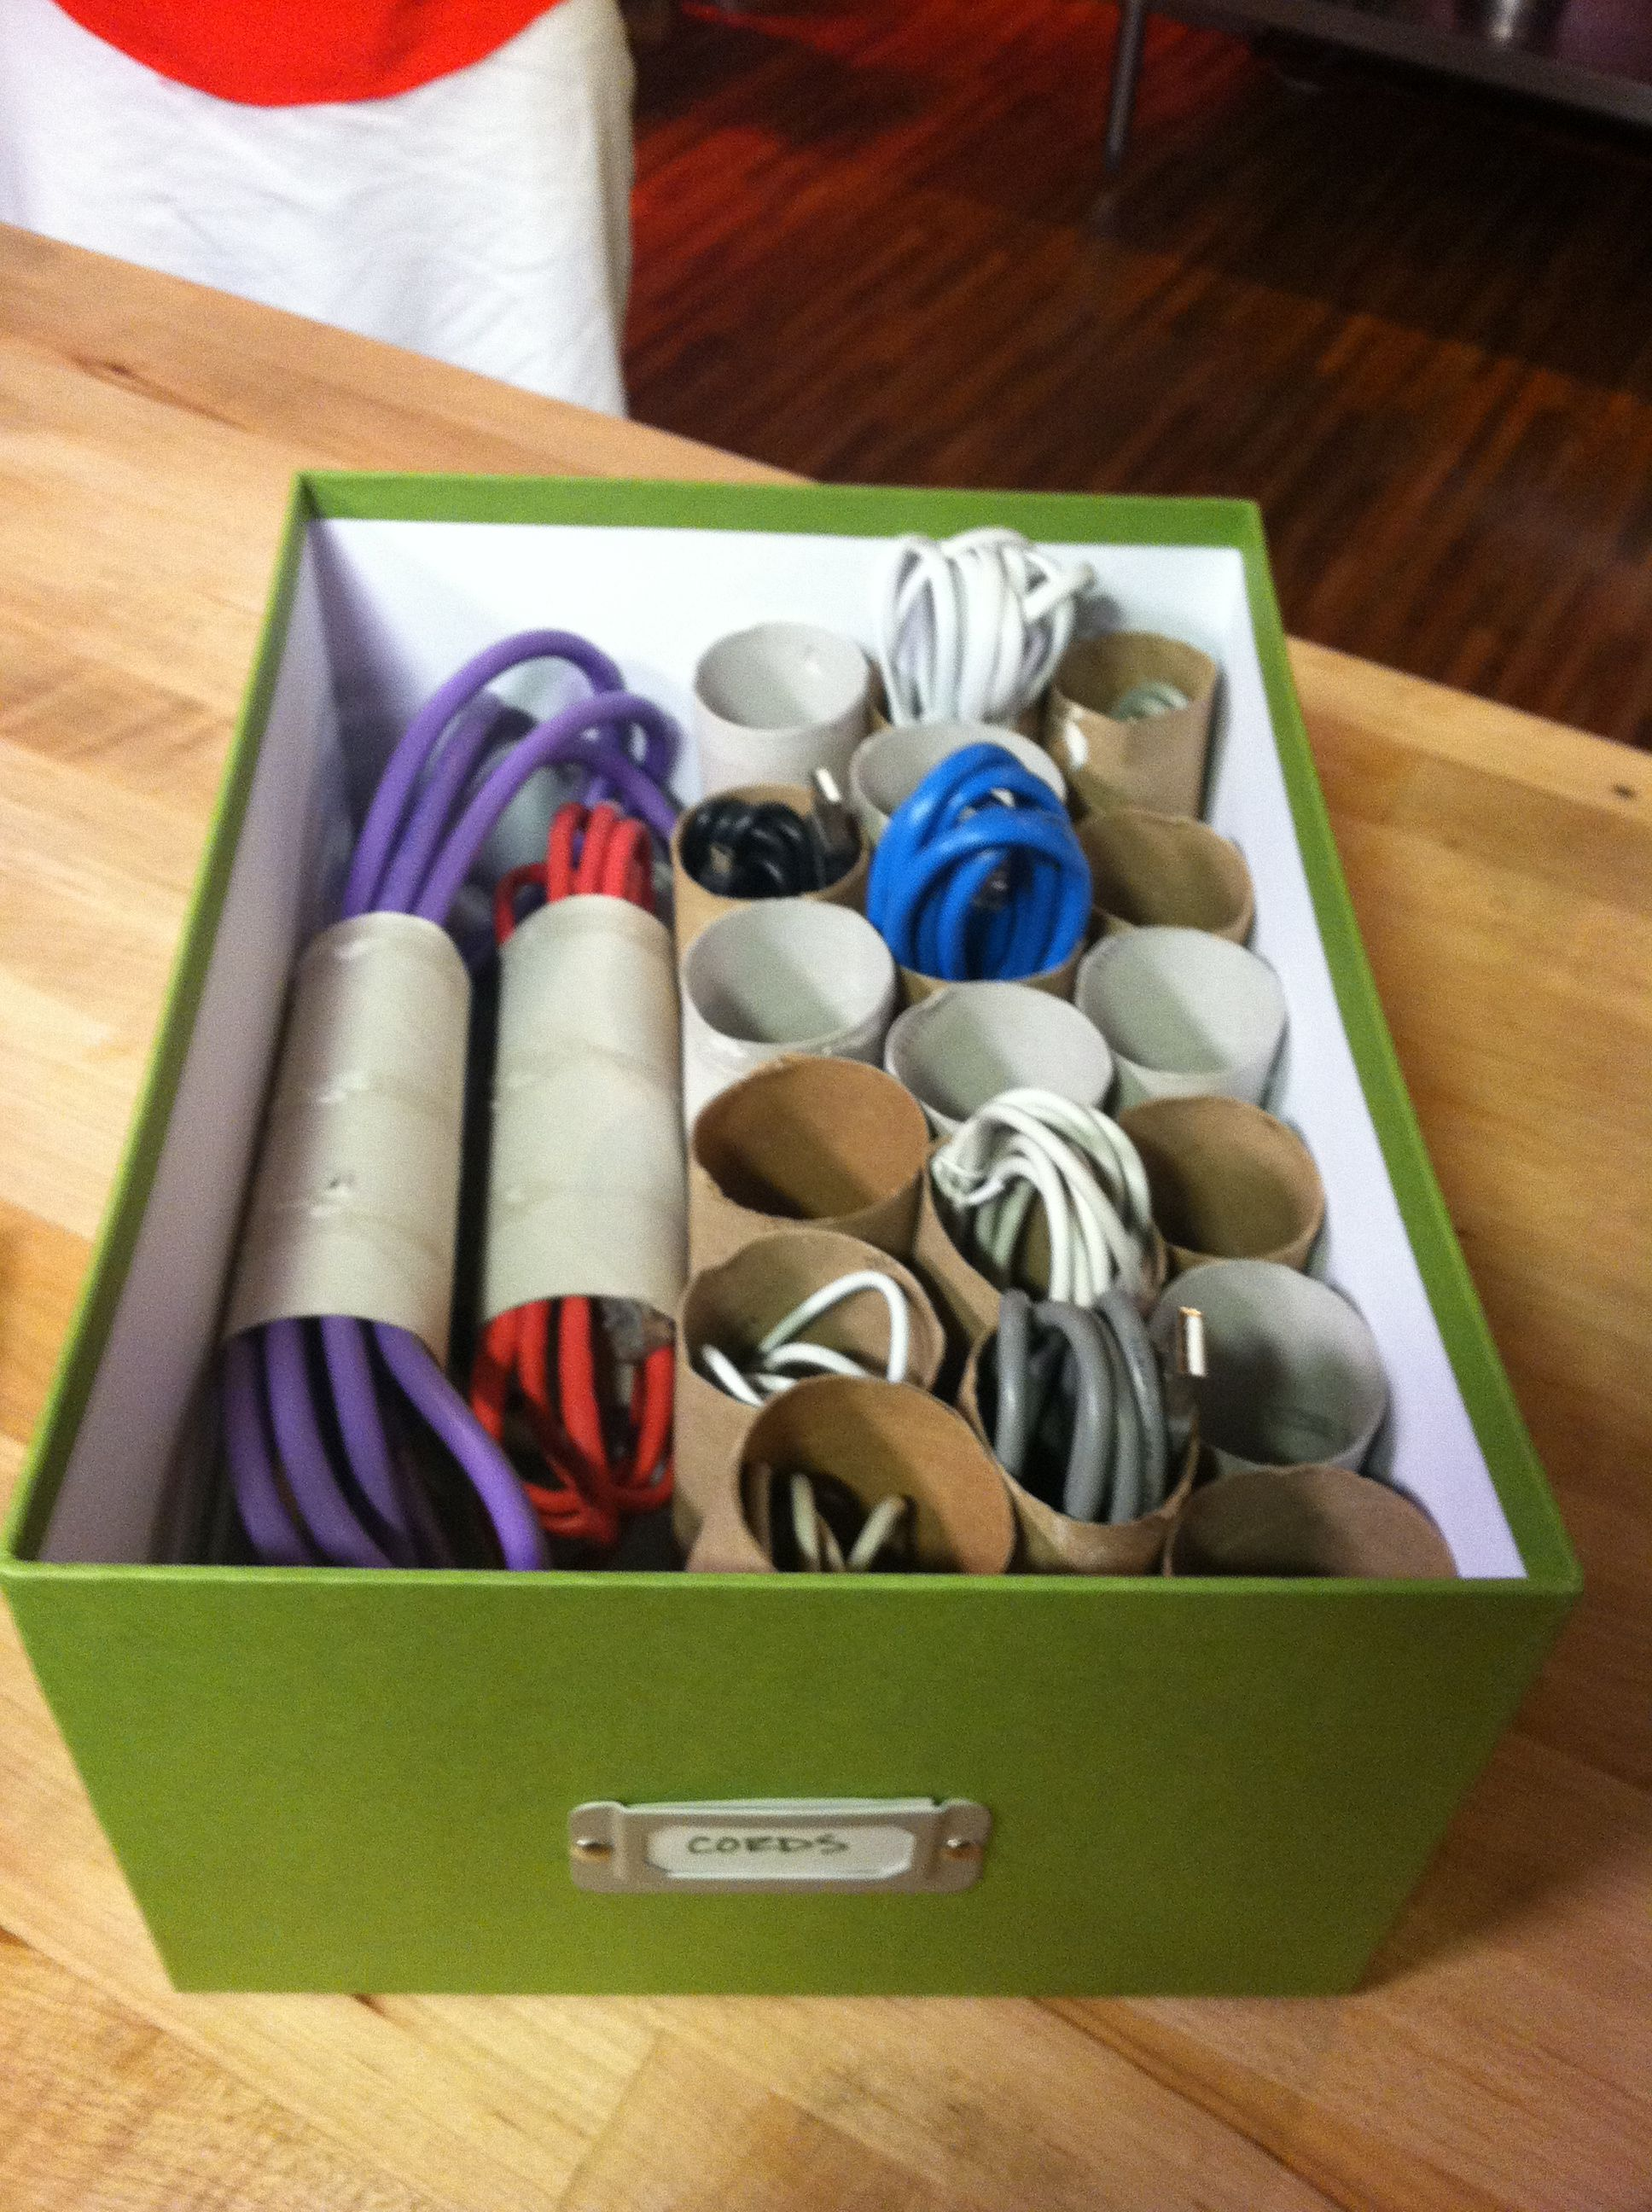 toilet paper roll cord organizer you 39 ll never have a tangled mess again tips genius ideas. Black Bedroom Furniture Sets. Home Design Ideas